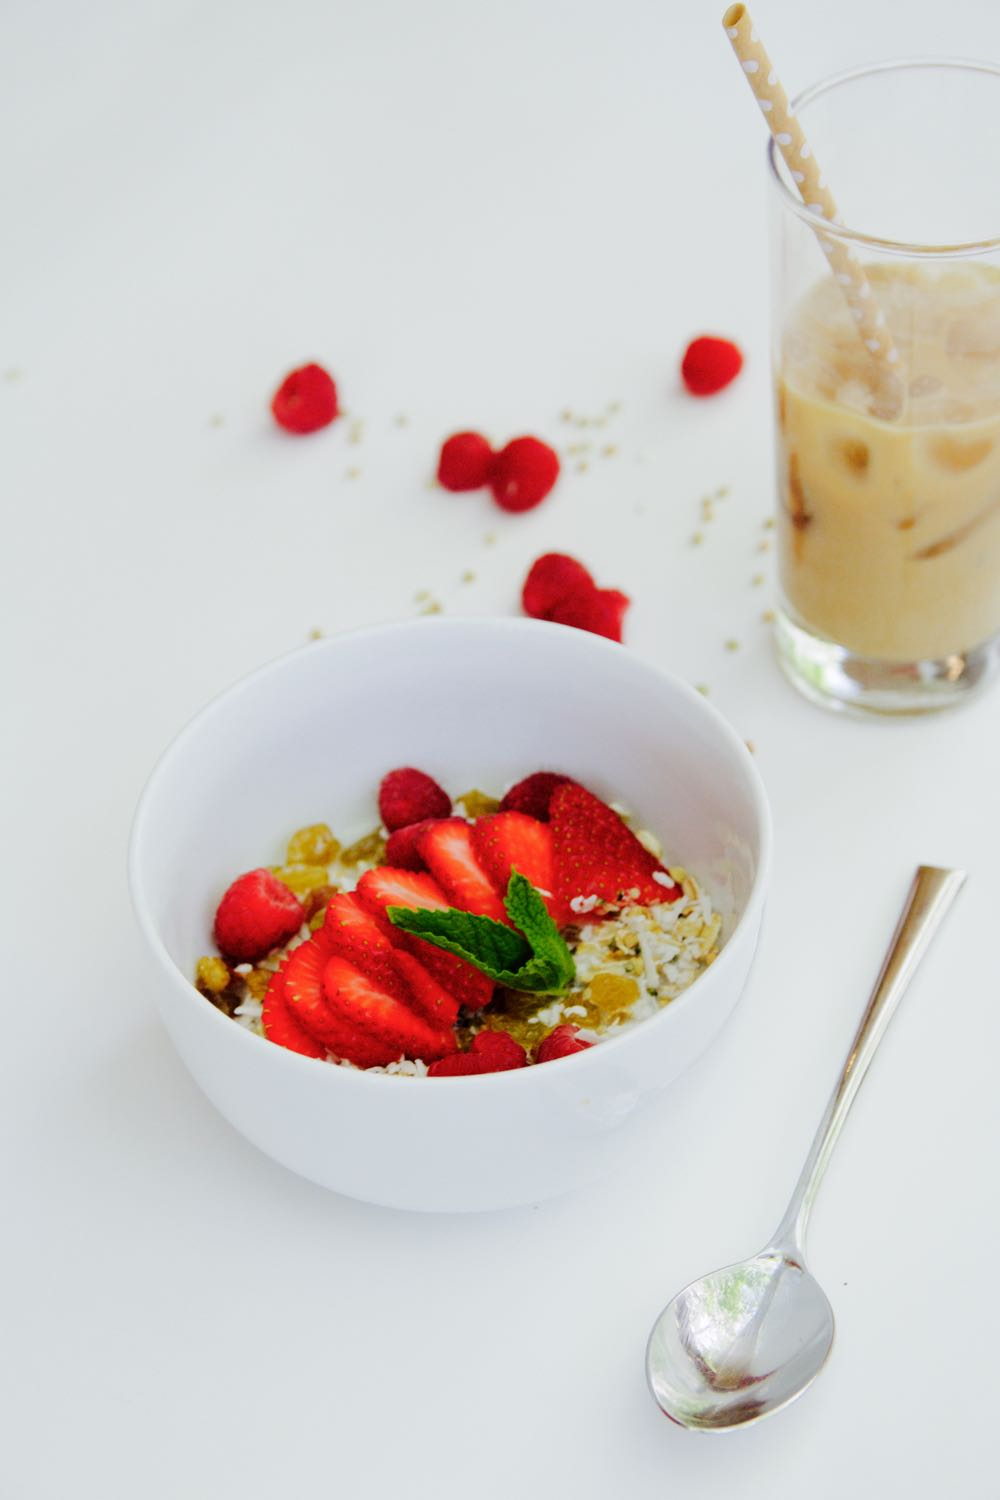 Homemade cold cereal breakfast bowl with berries